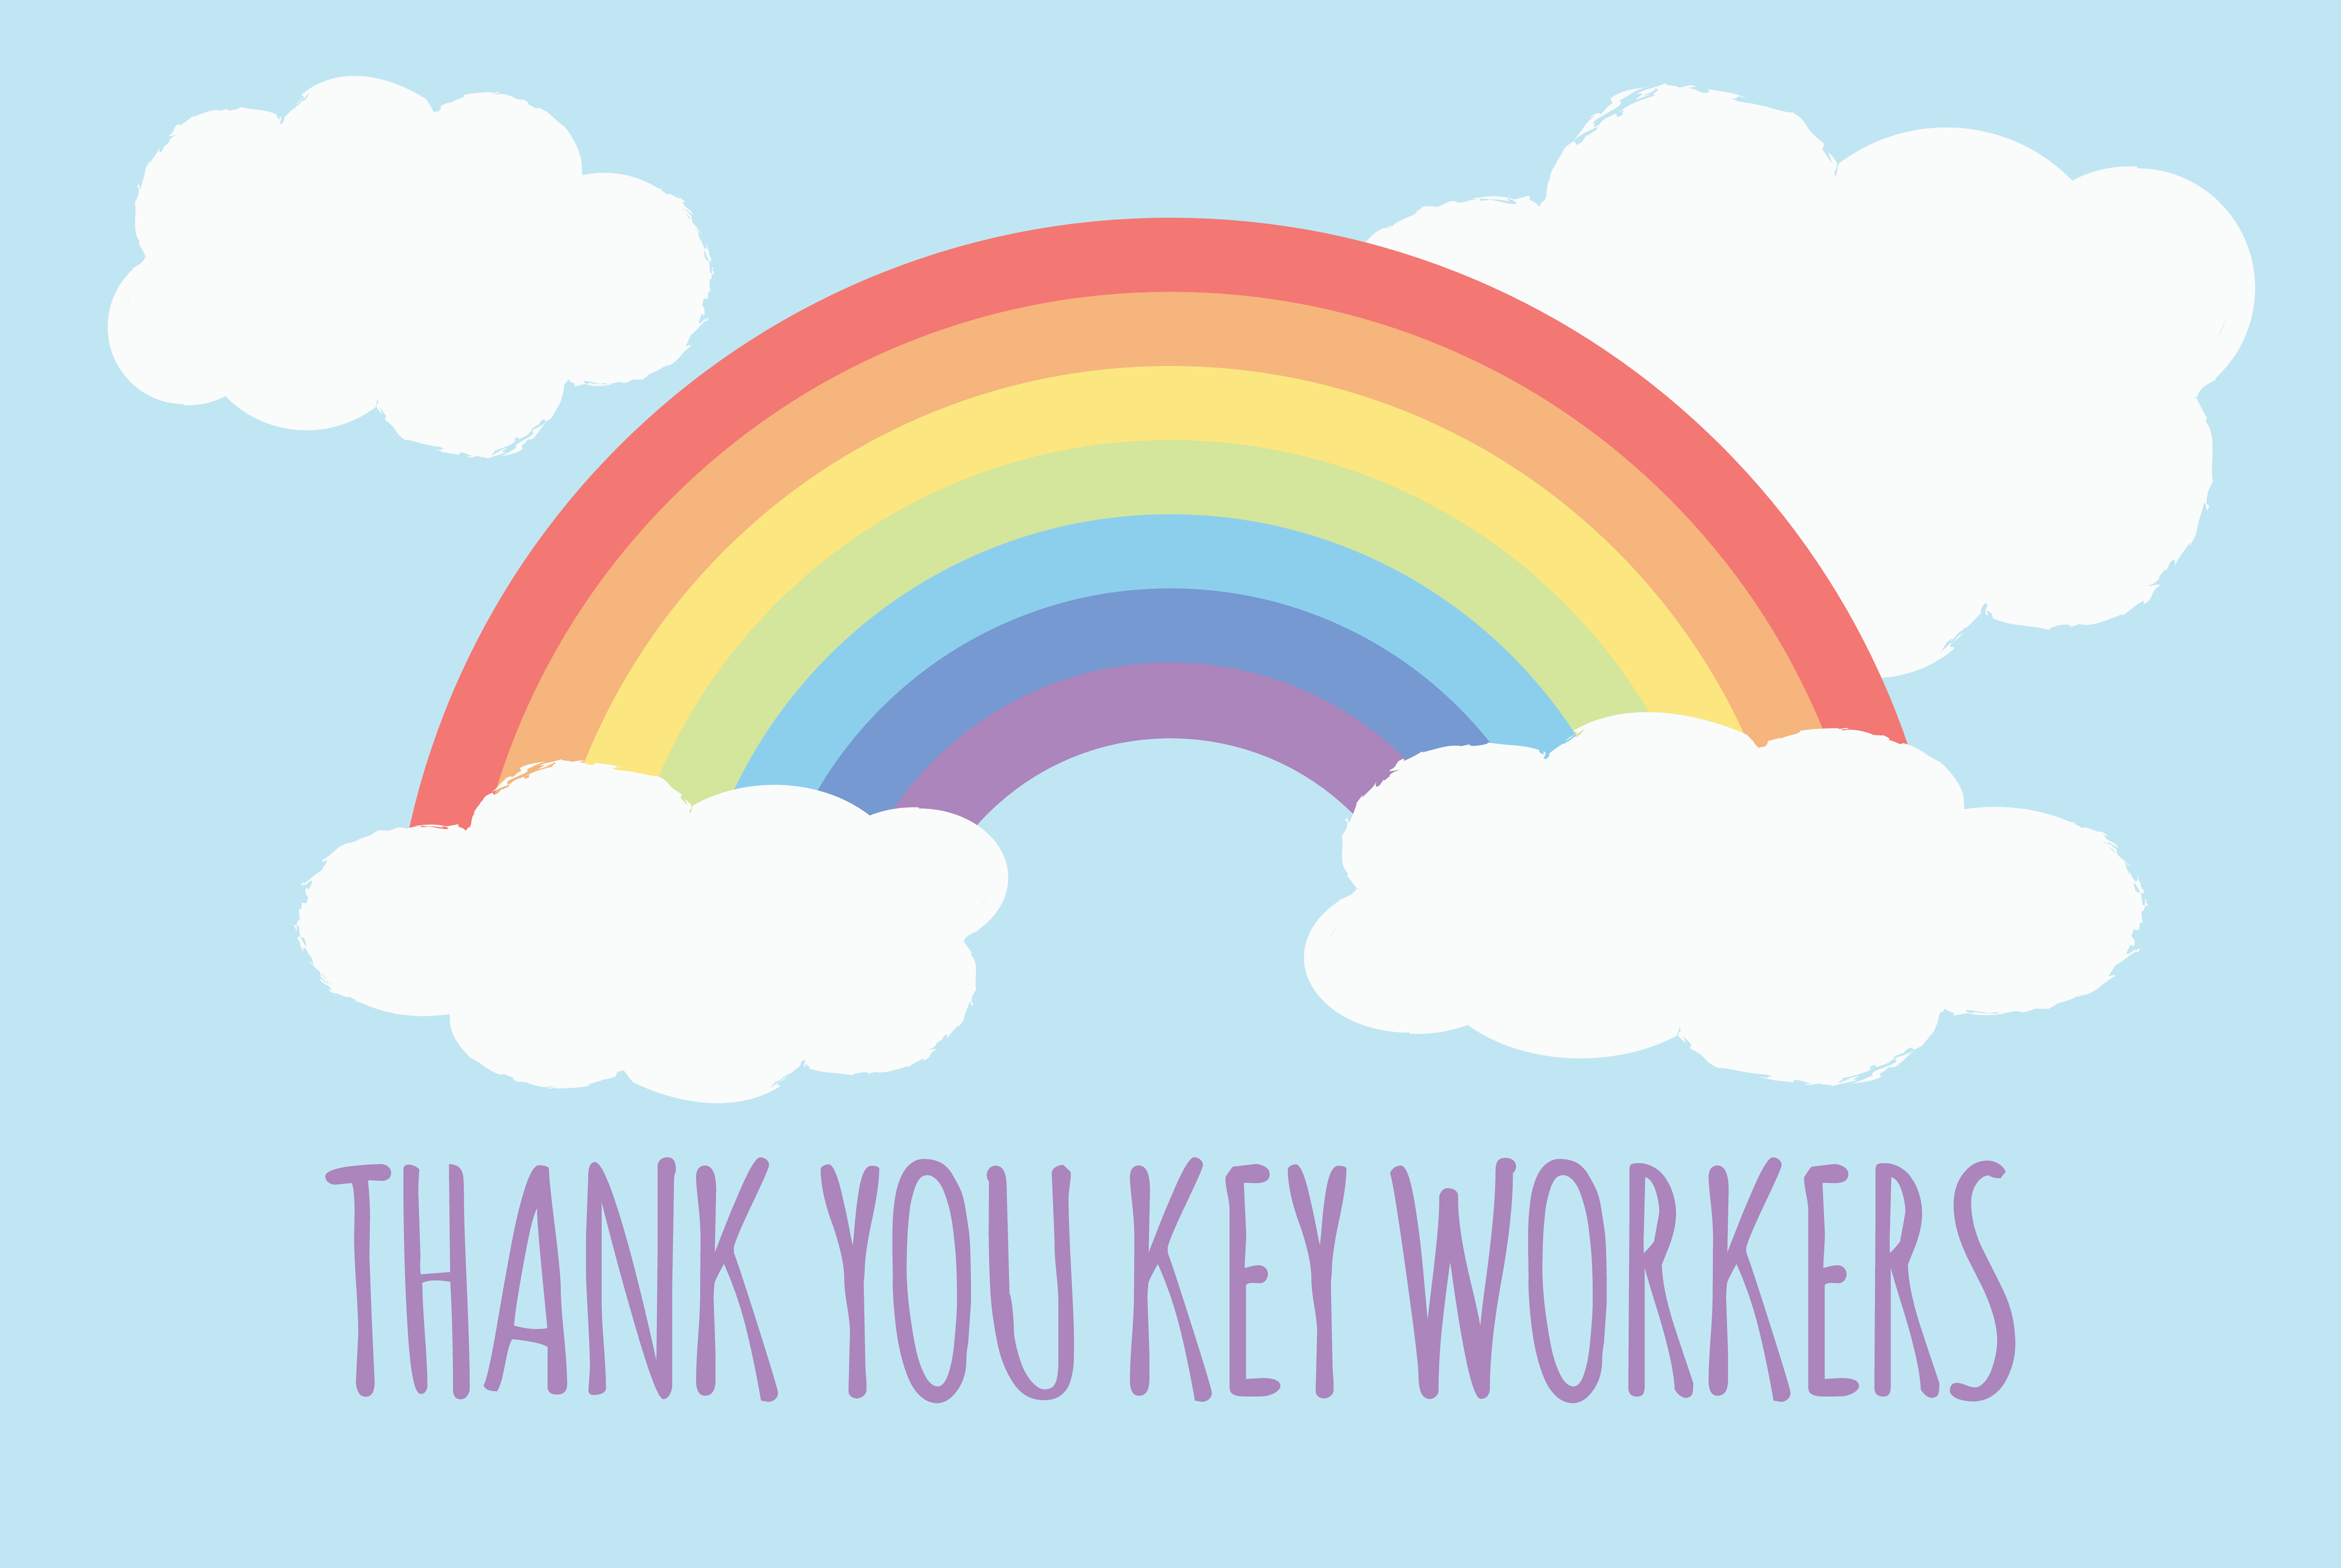 Thank You Key Workers